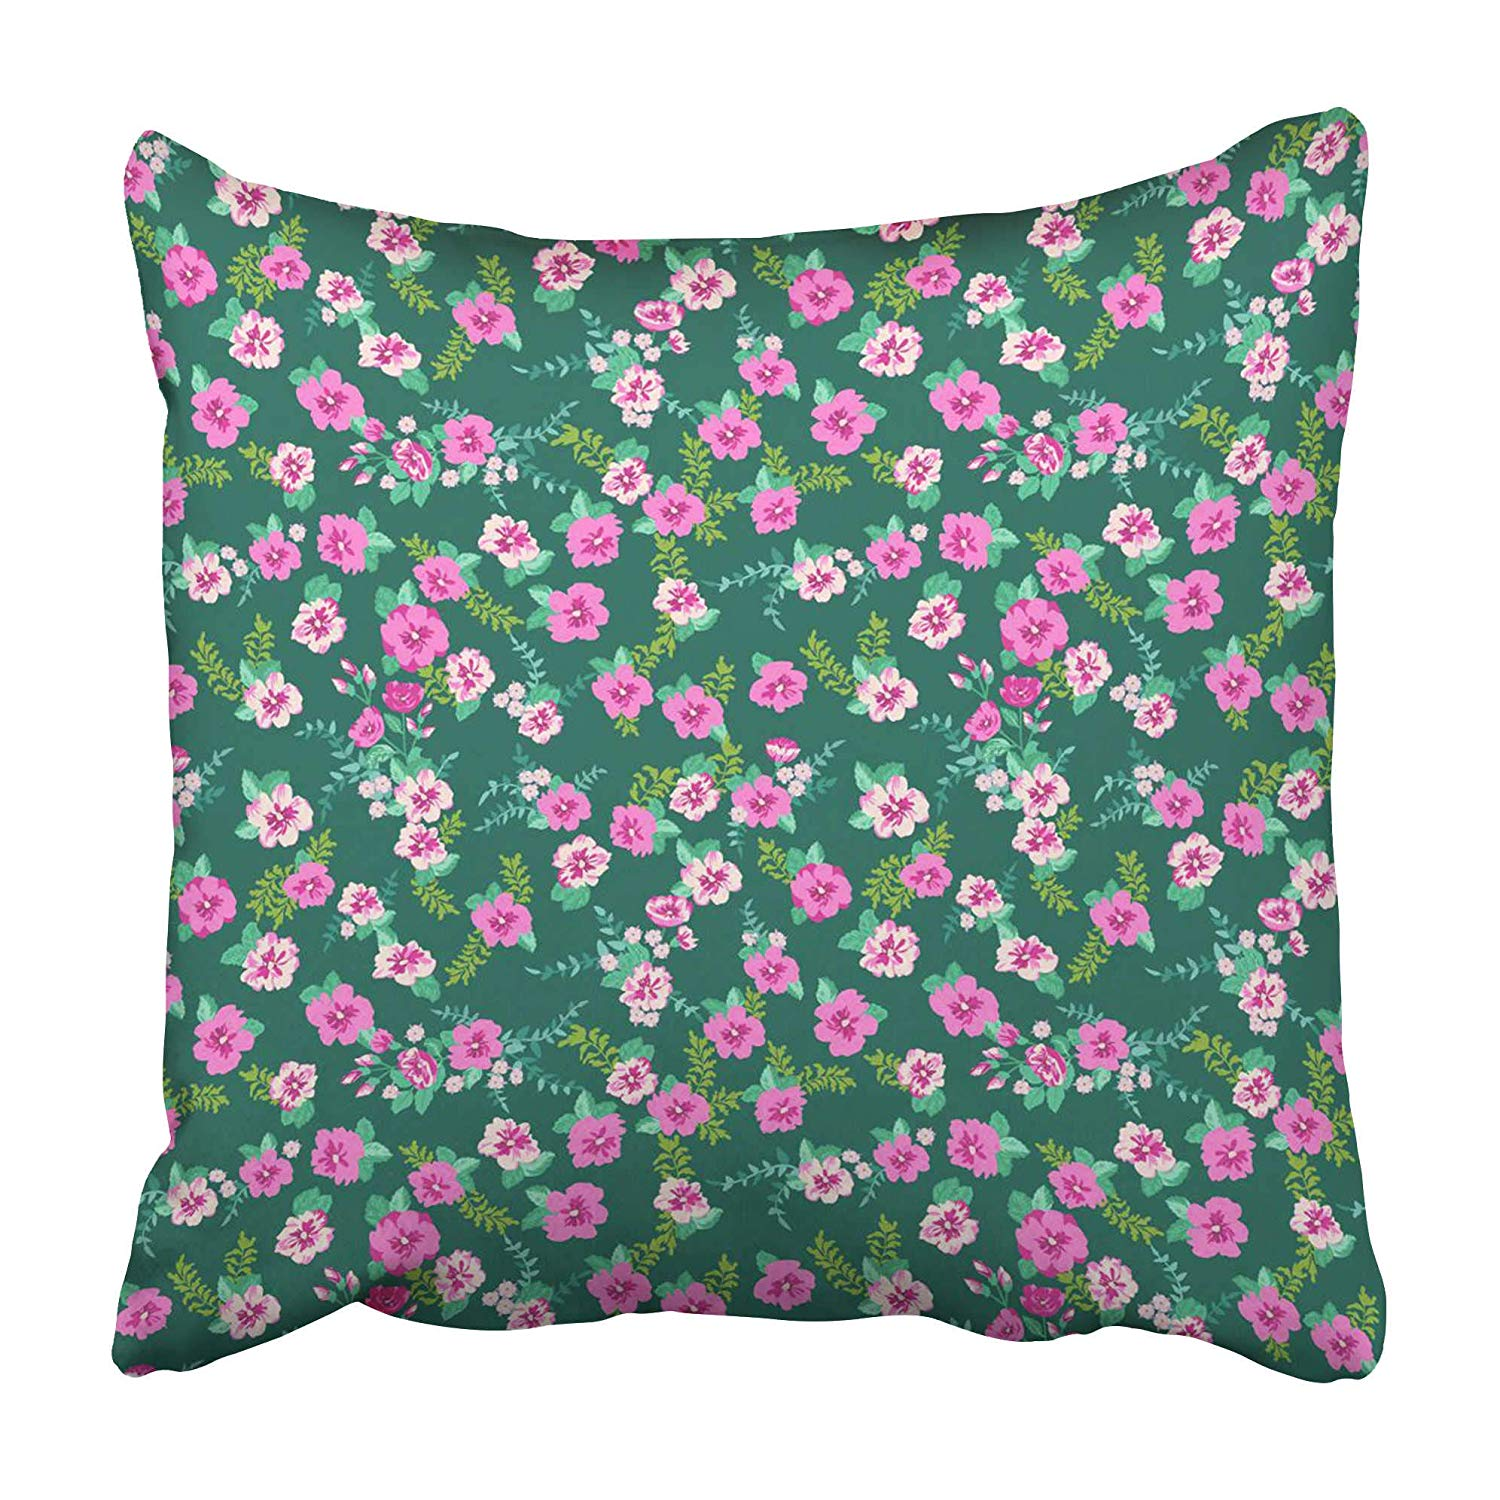 USART Ditsy in Small Cute Wild Flowers Delicate Bouquets Liberty Millefleurs Floral Pillowcase 20x20 inch